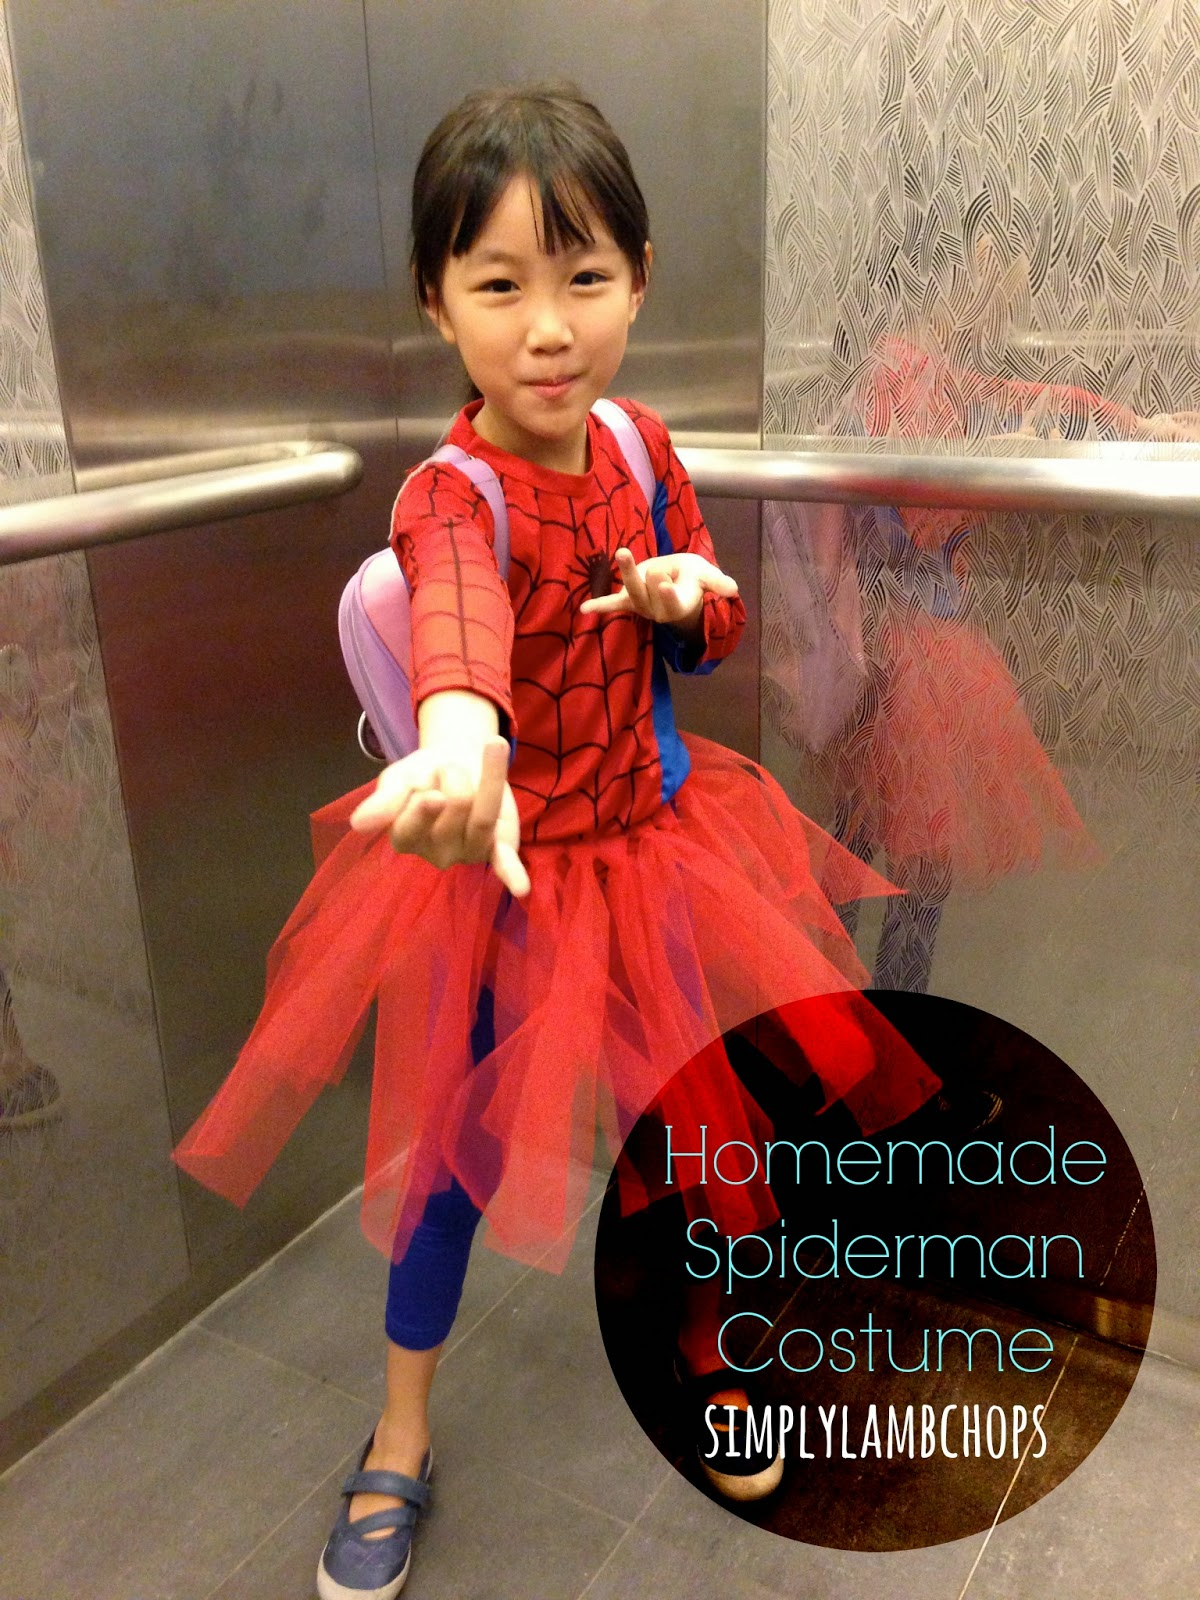 Homemade Spiderman costume for girls by Simply Lambchops